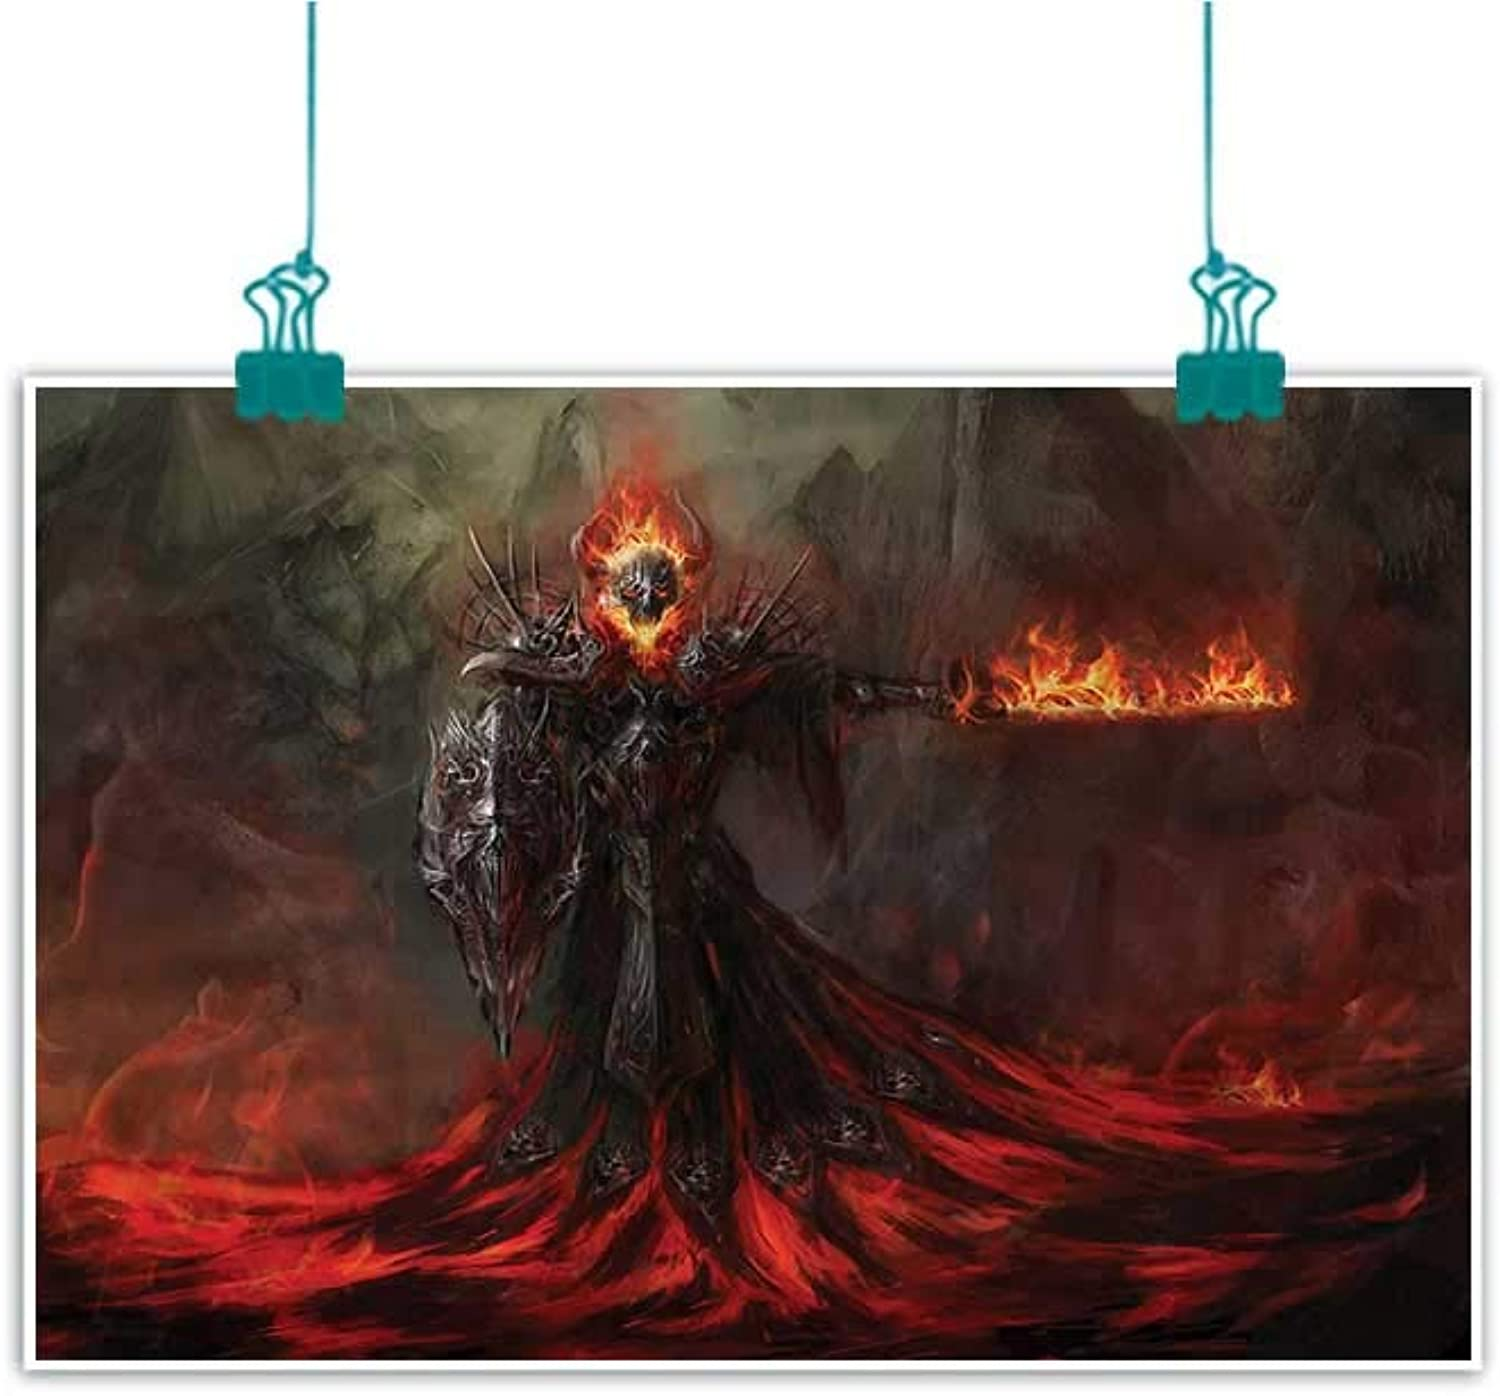 Unpremoon Fantasy World,Bedroom Wall Decor W 48  x L 32  Scary Magma Creature for Bedroom Office Homes Decorations